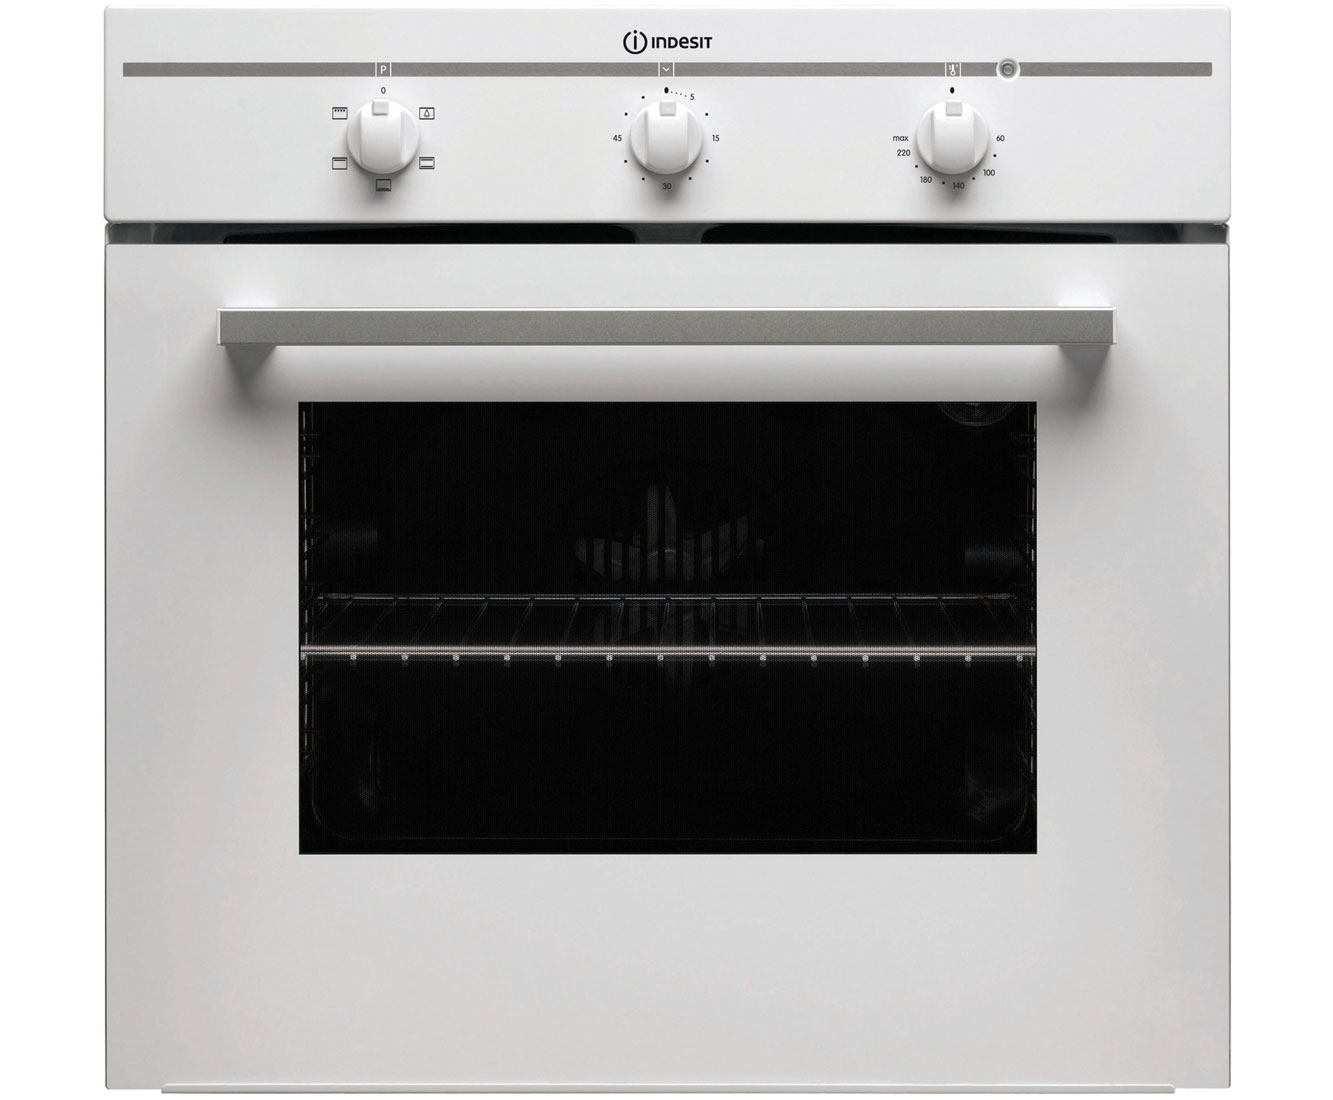 Indesit FIM21KBWH Built In Electric Single Oven - White